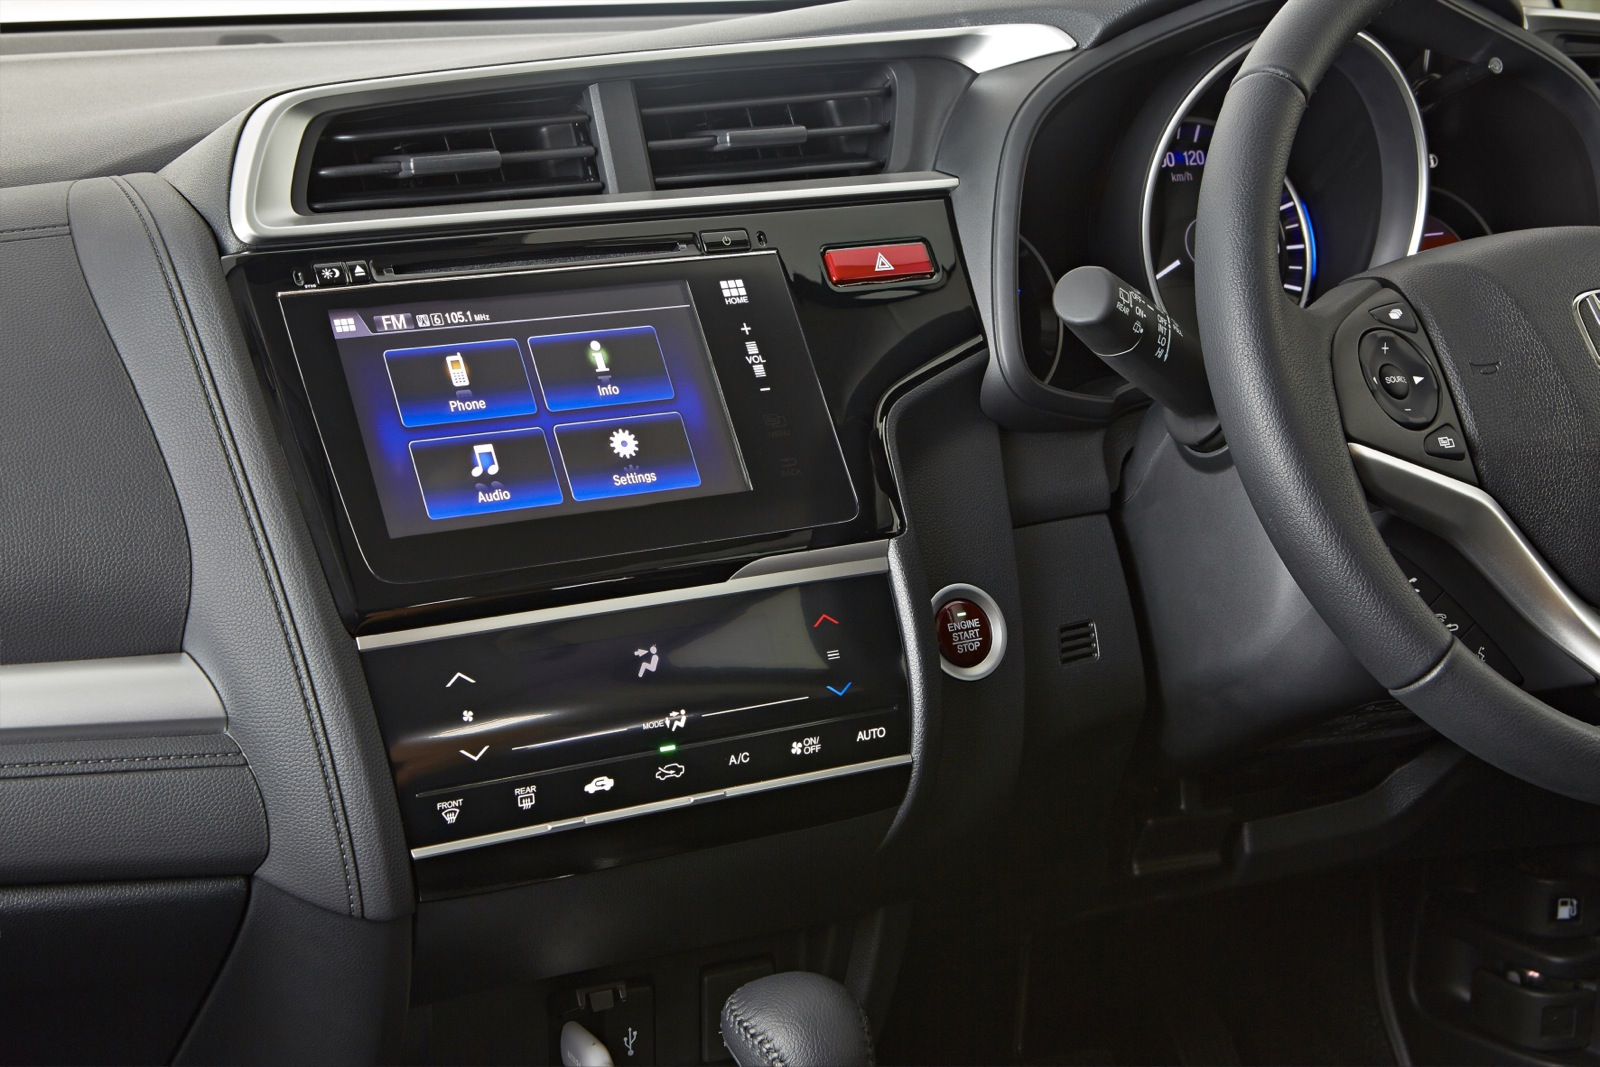 Wards Automotive lists its 10 Best Interiors for 2015 India